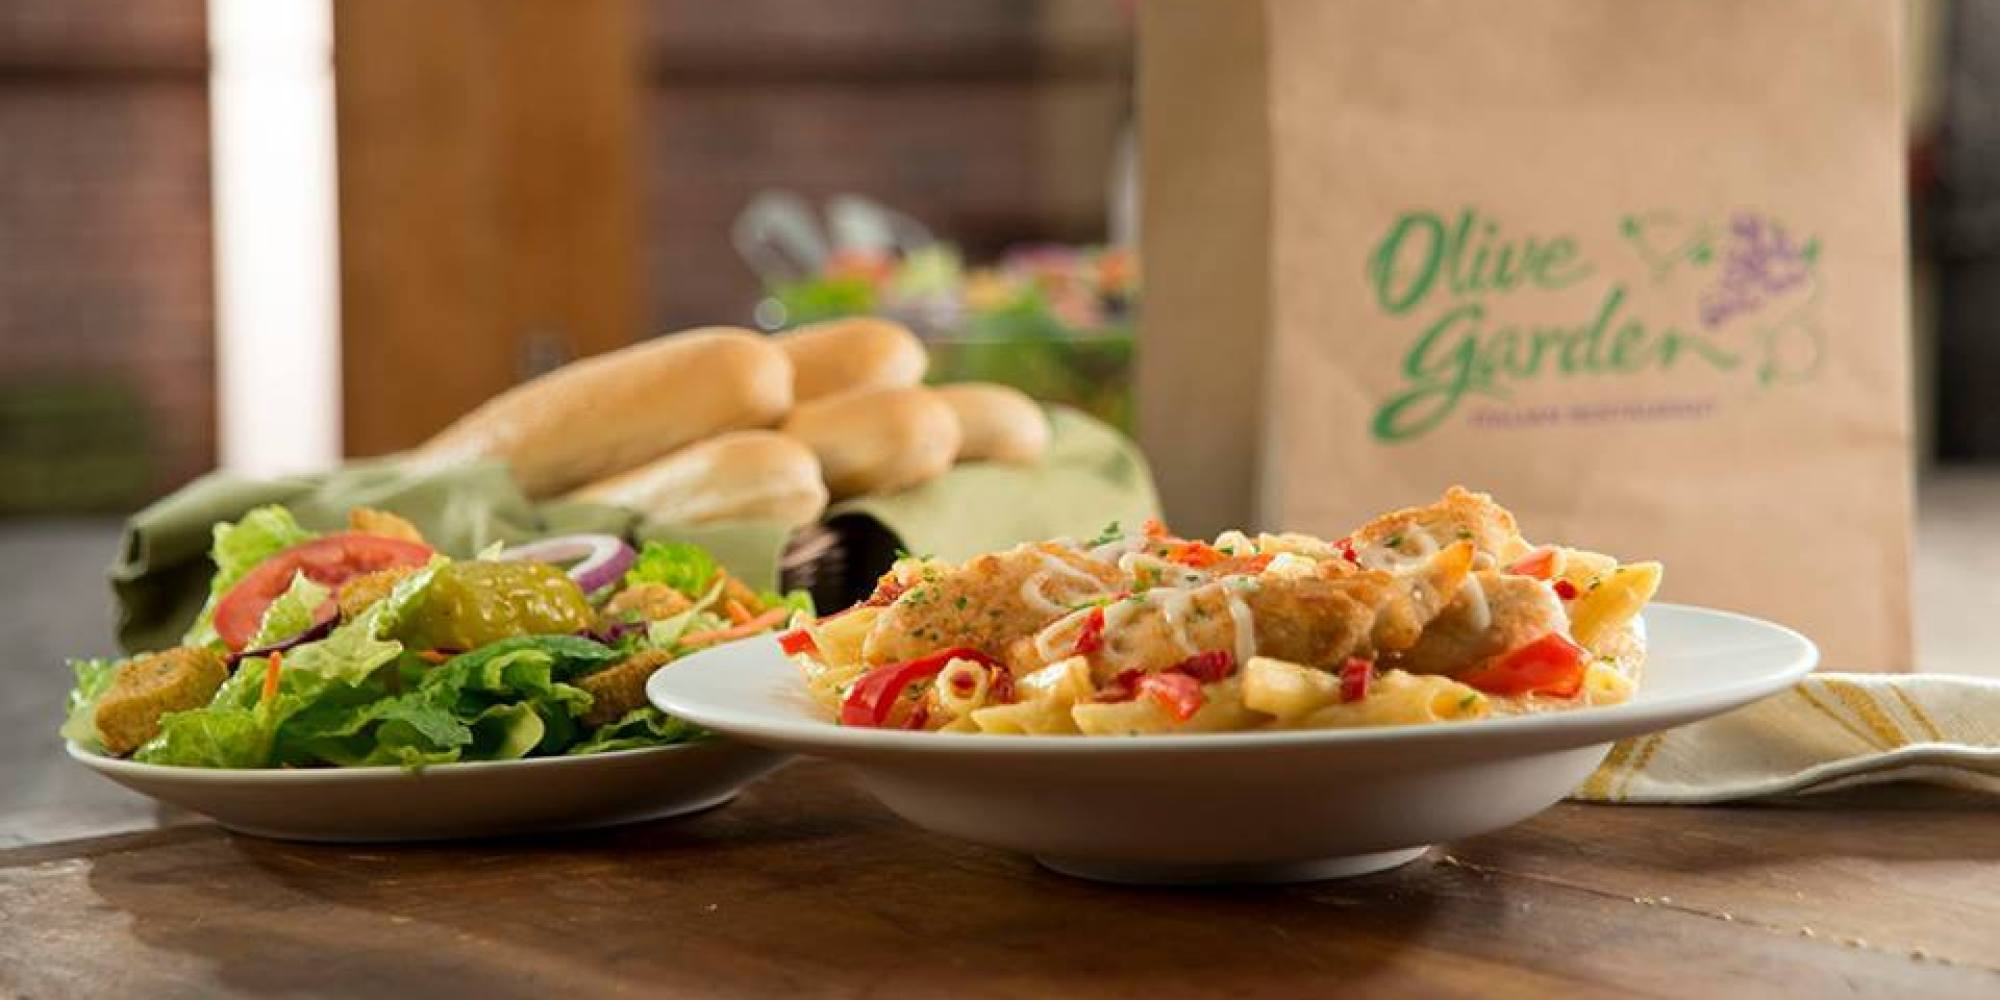 Restaurant Deals: Olive Garden, Outback Steakhouse and Steak Escape ...